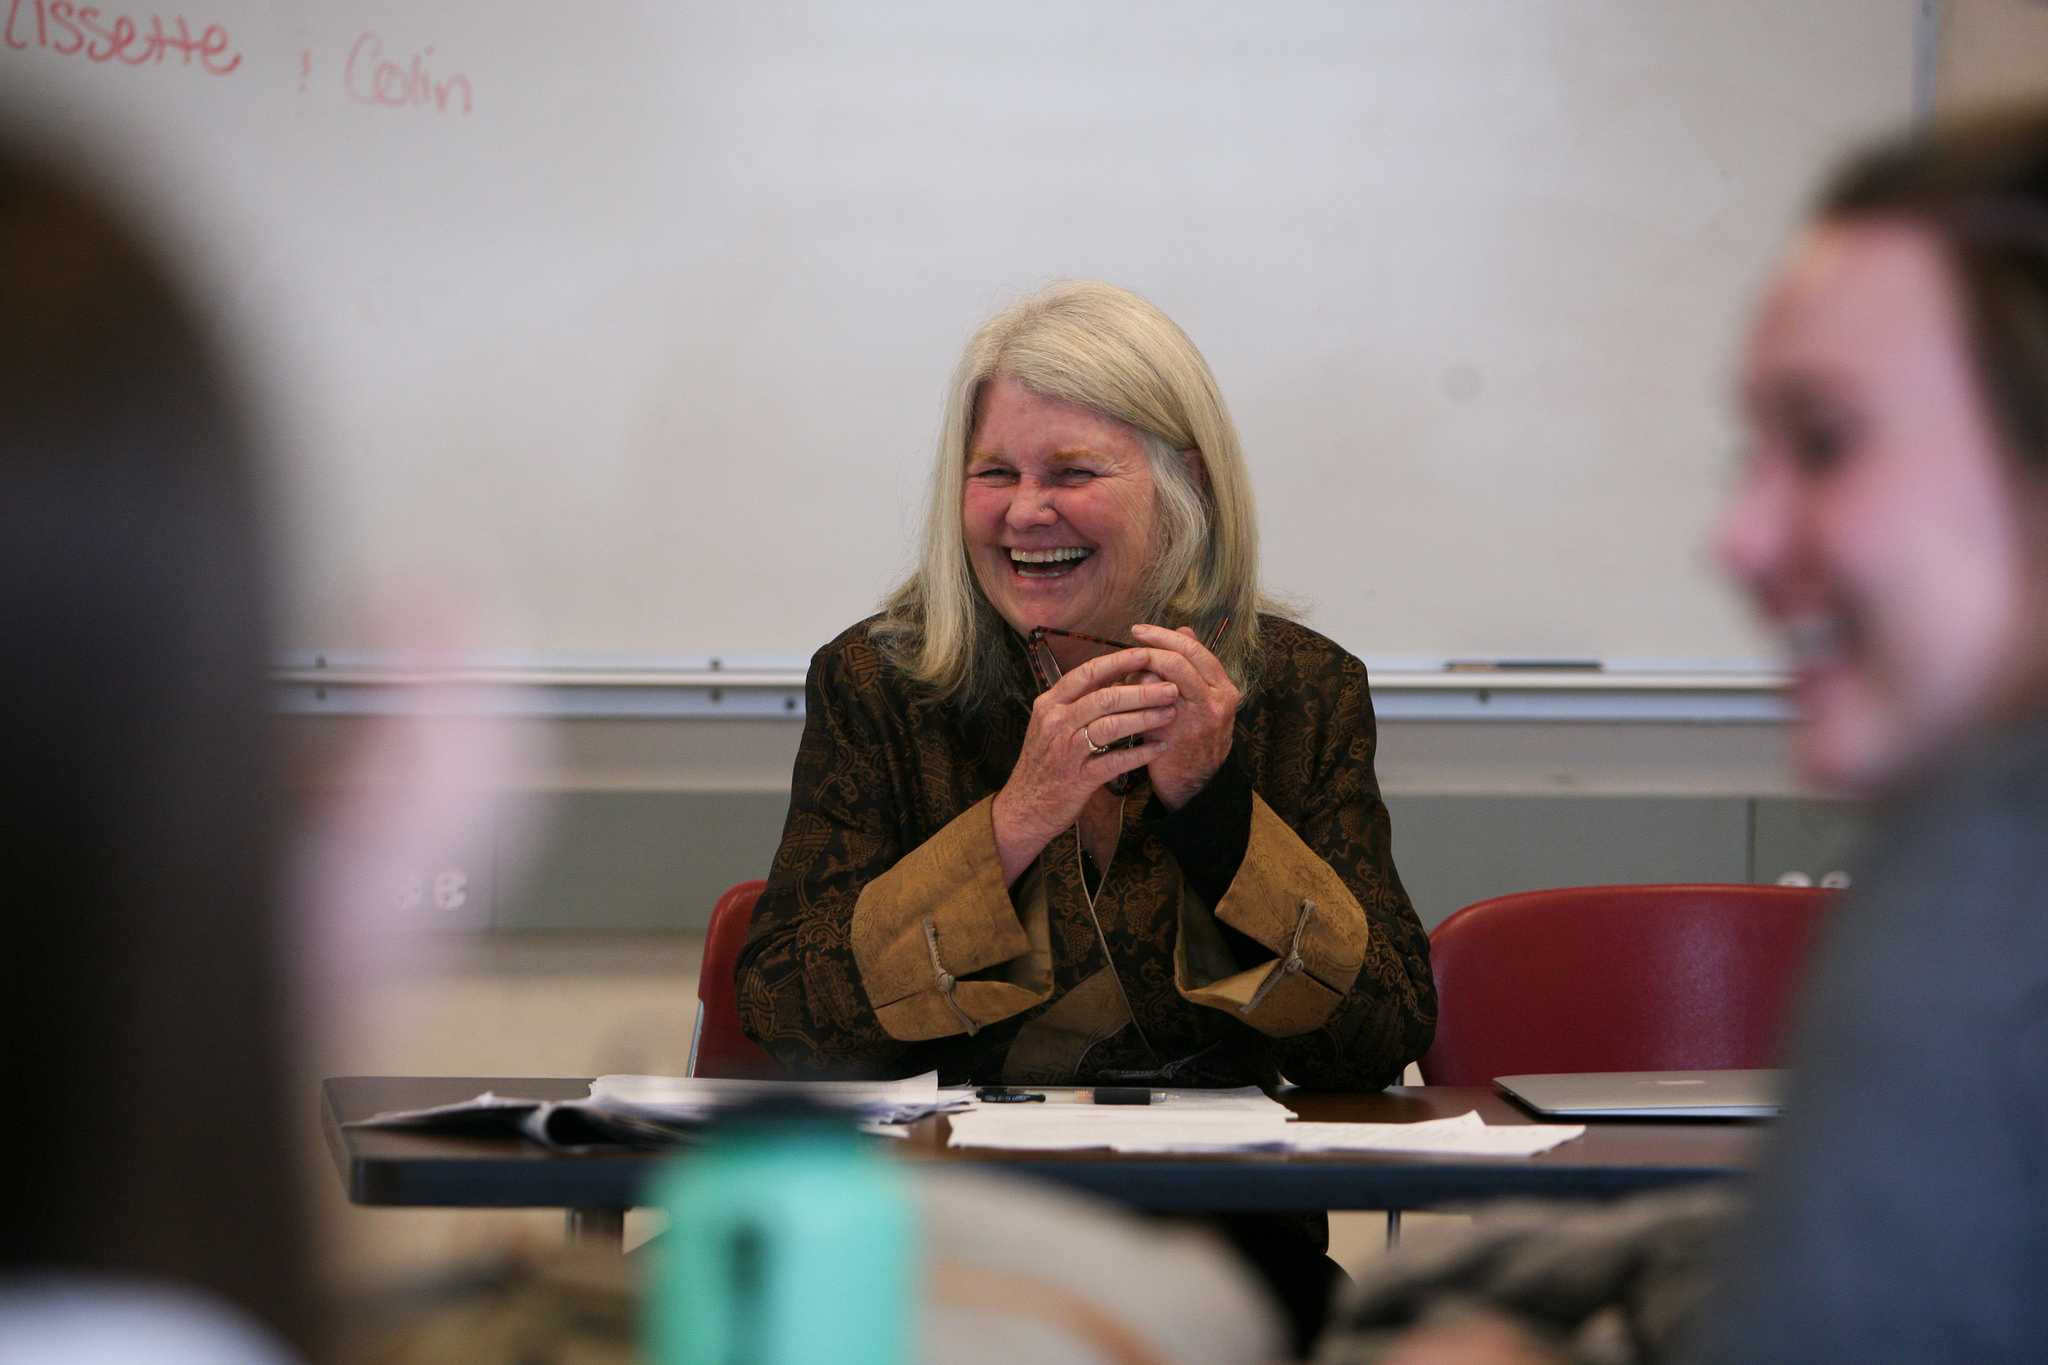 Journalism professor earns fond farewell